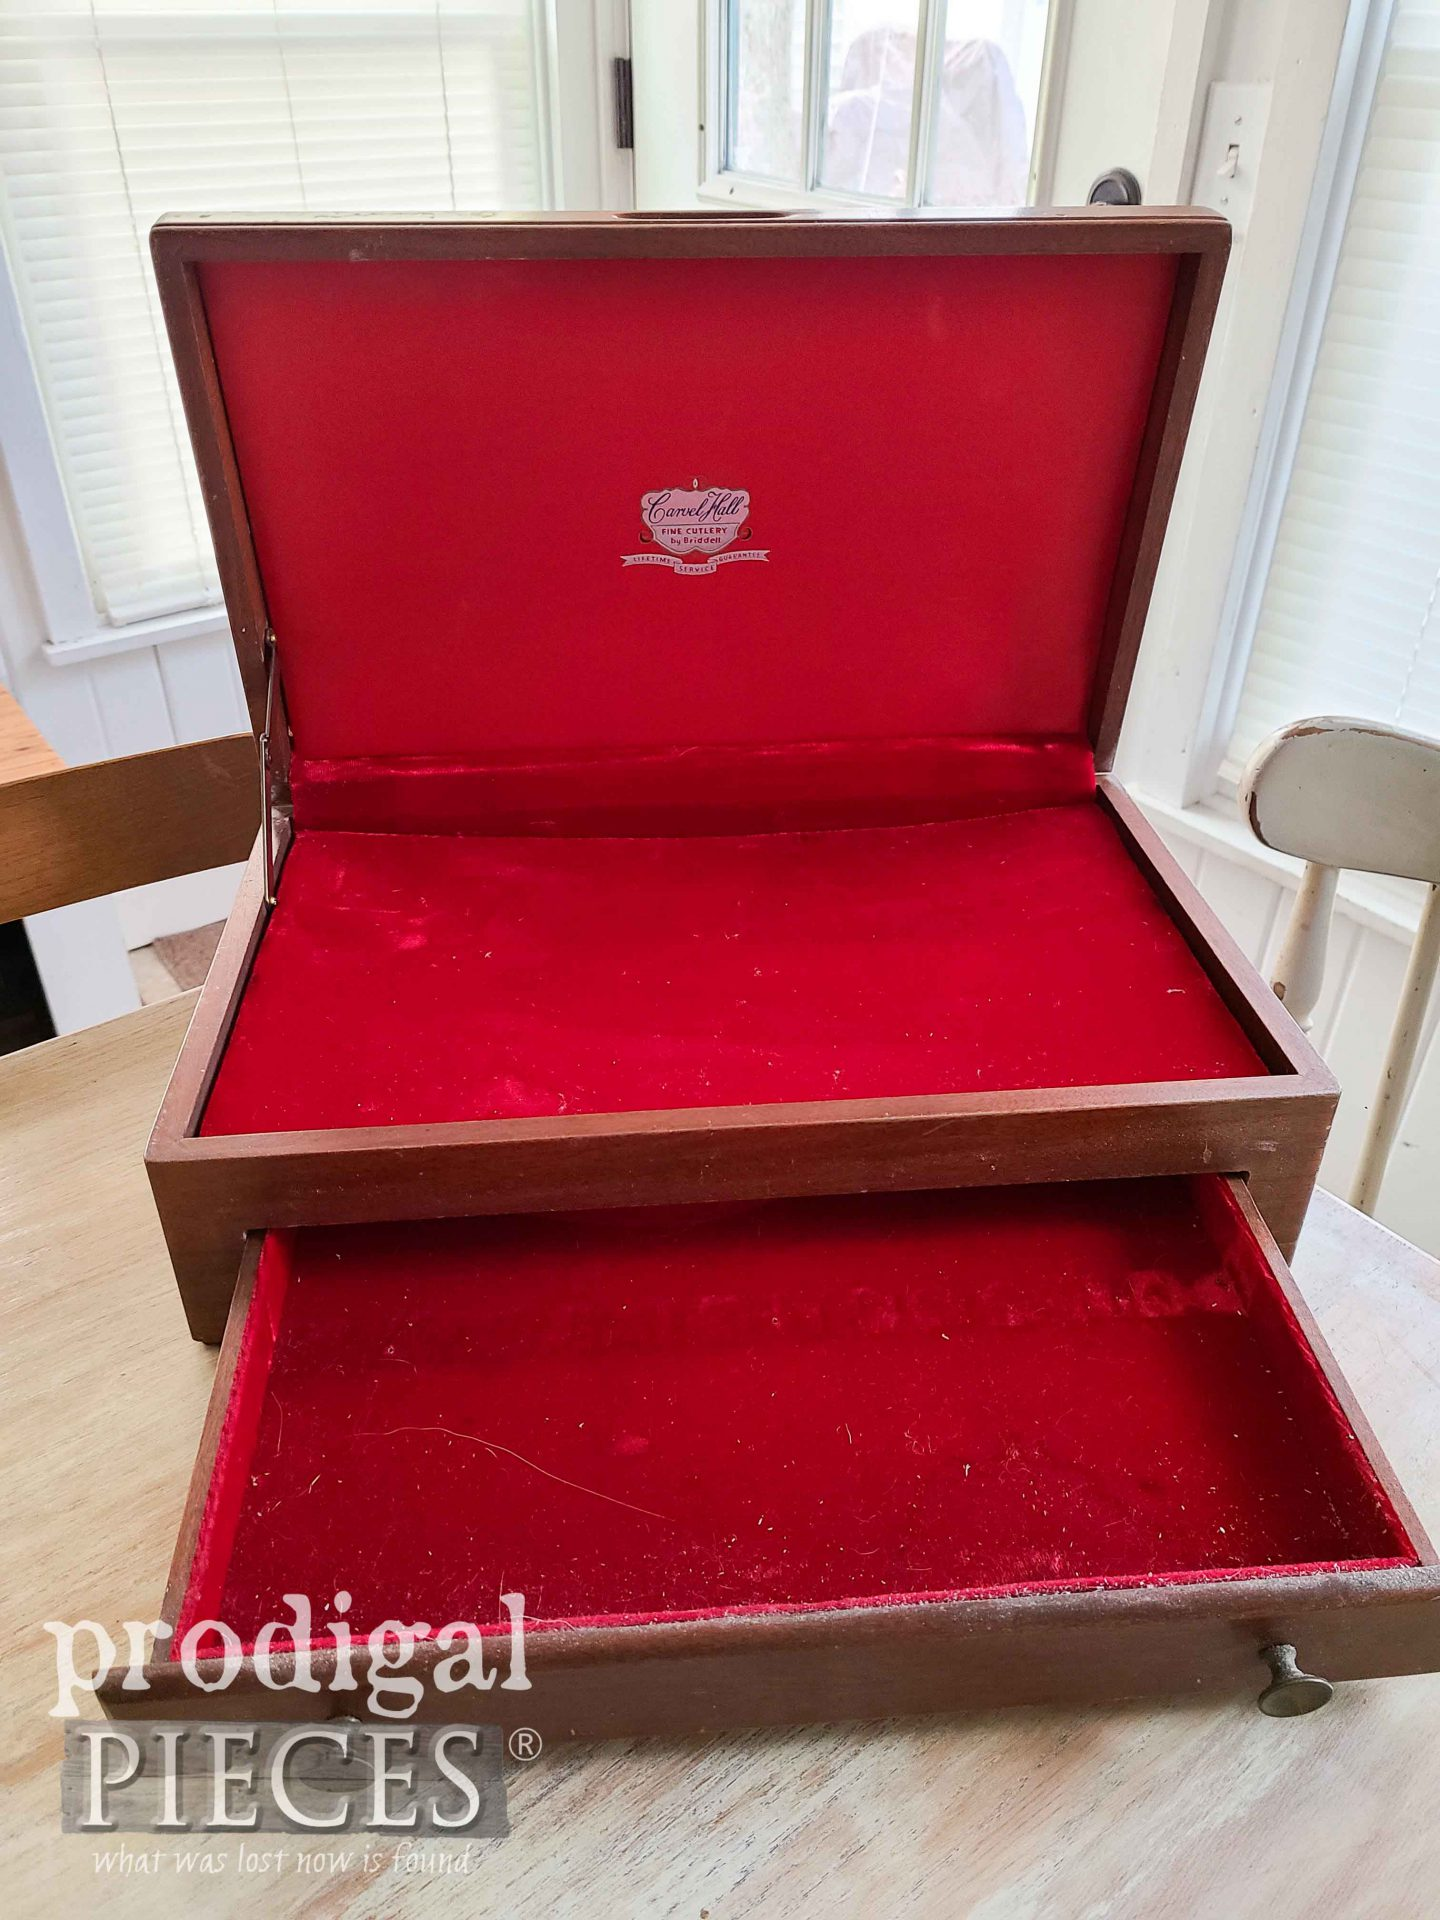 Inside Silverware Chest with Red Lining | prodigalpieces.com #prodigalpieces